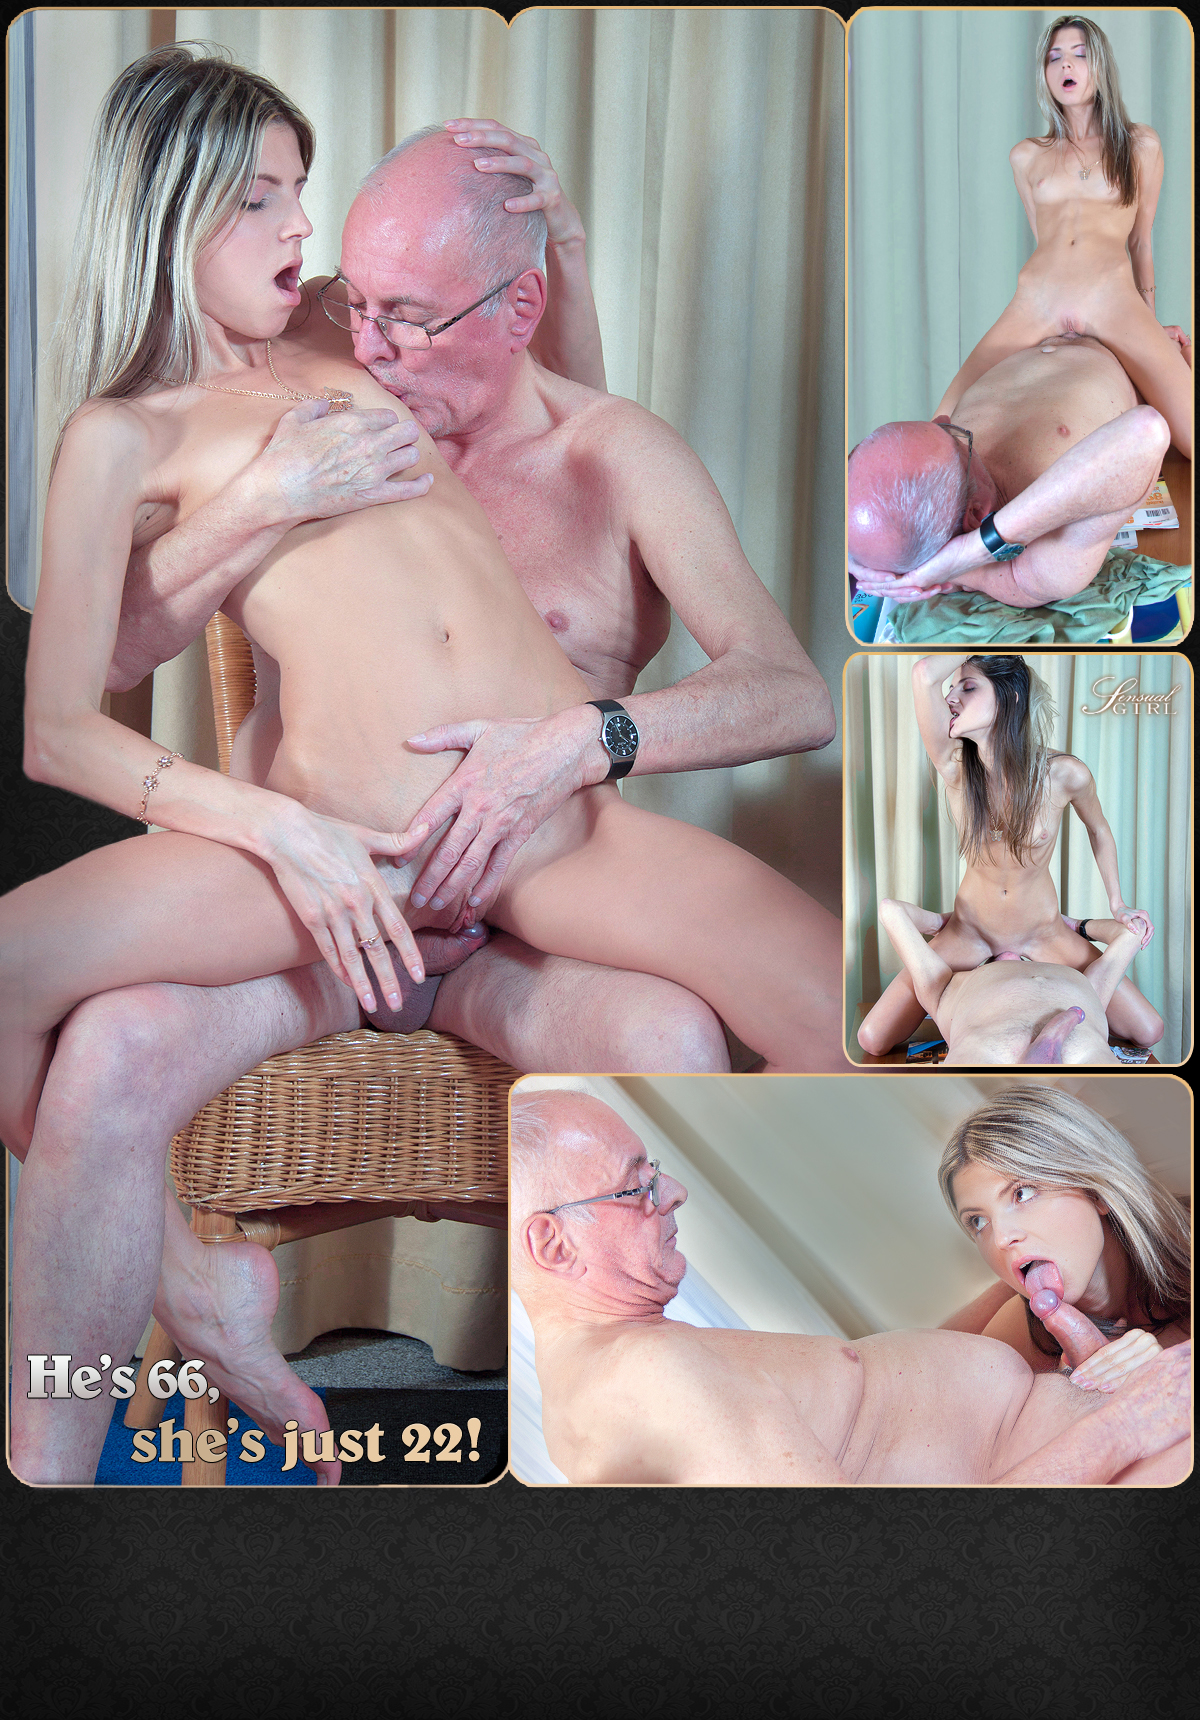 Gina Gerson hornny pussy fucks an old man